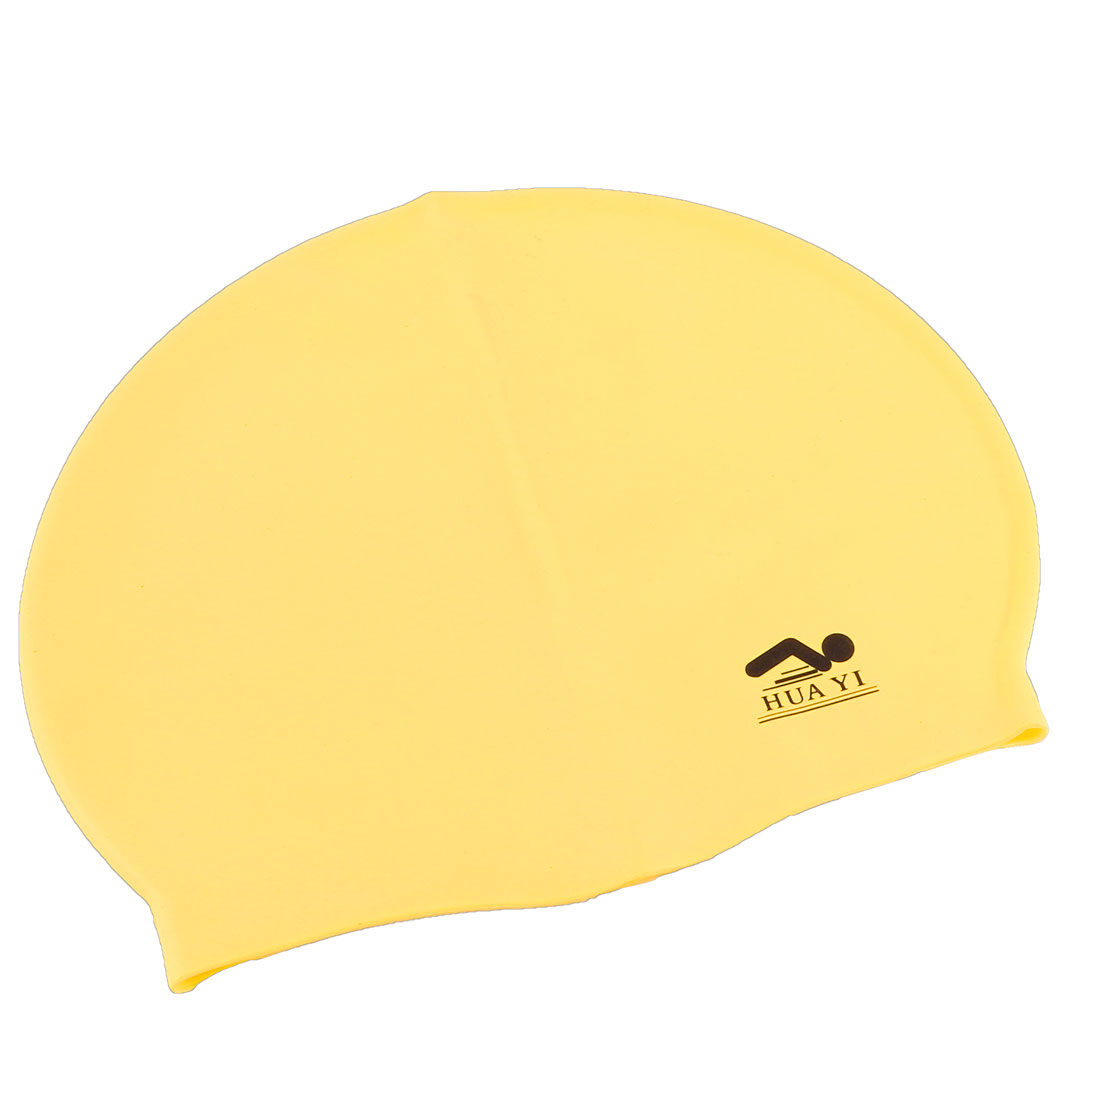 Adults Yellow Nonslip Dots Inner Silicone Swimming Swim Cap Hat